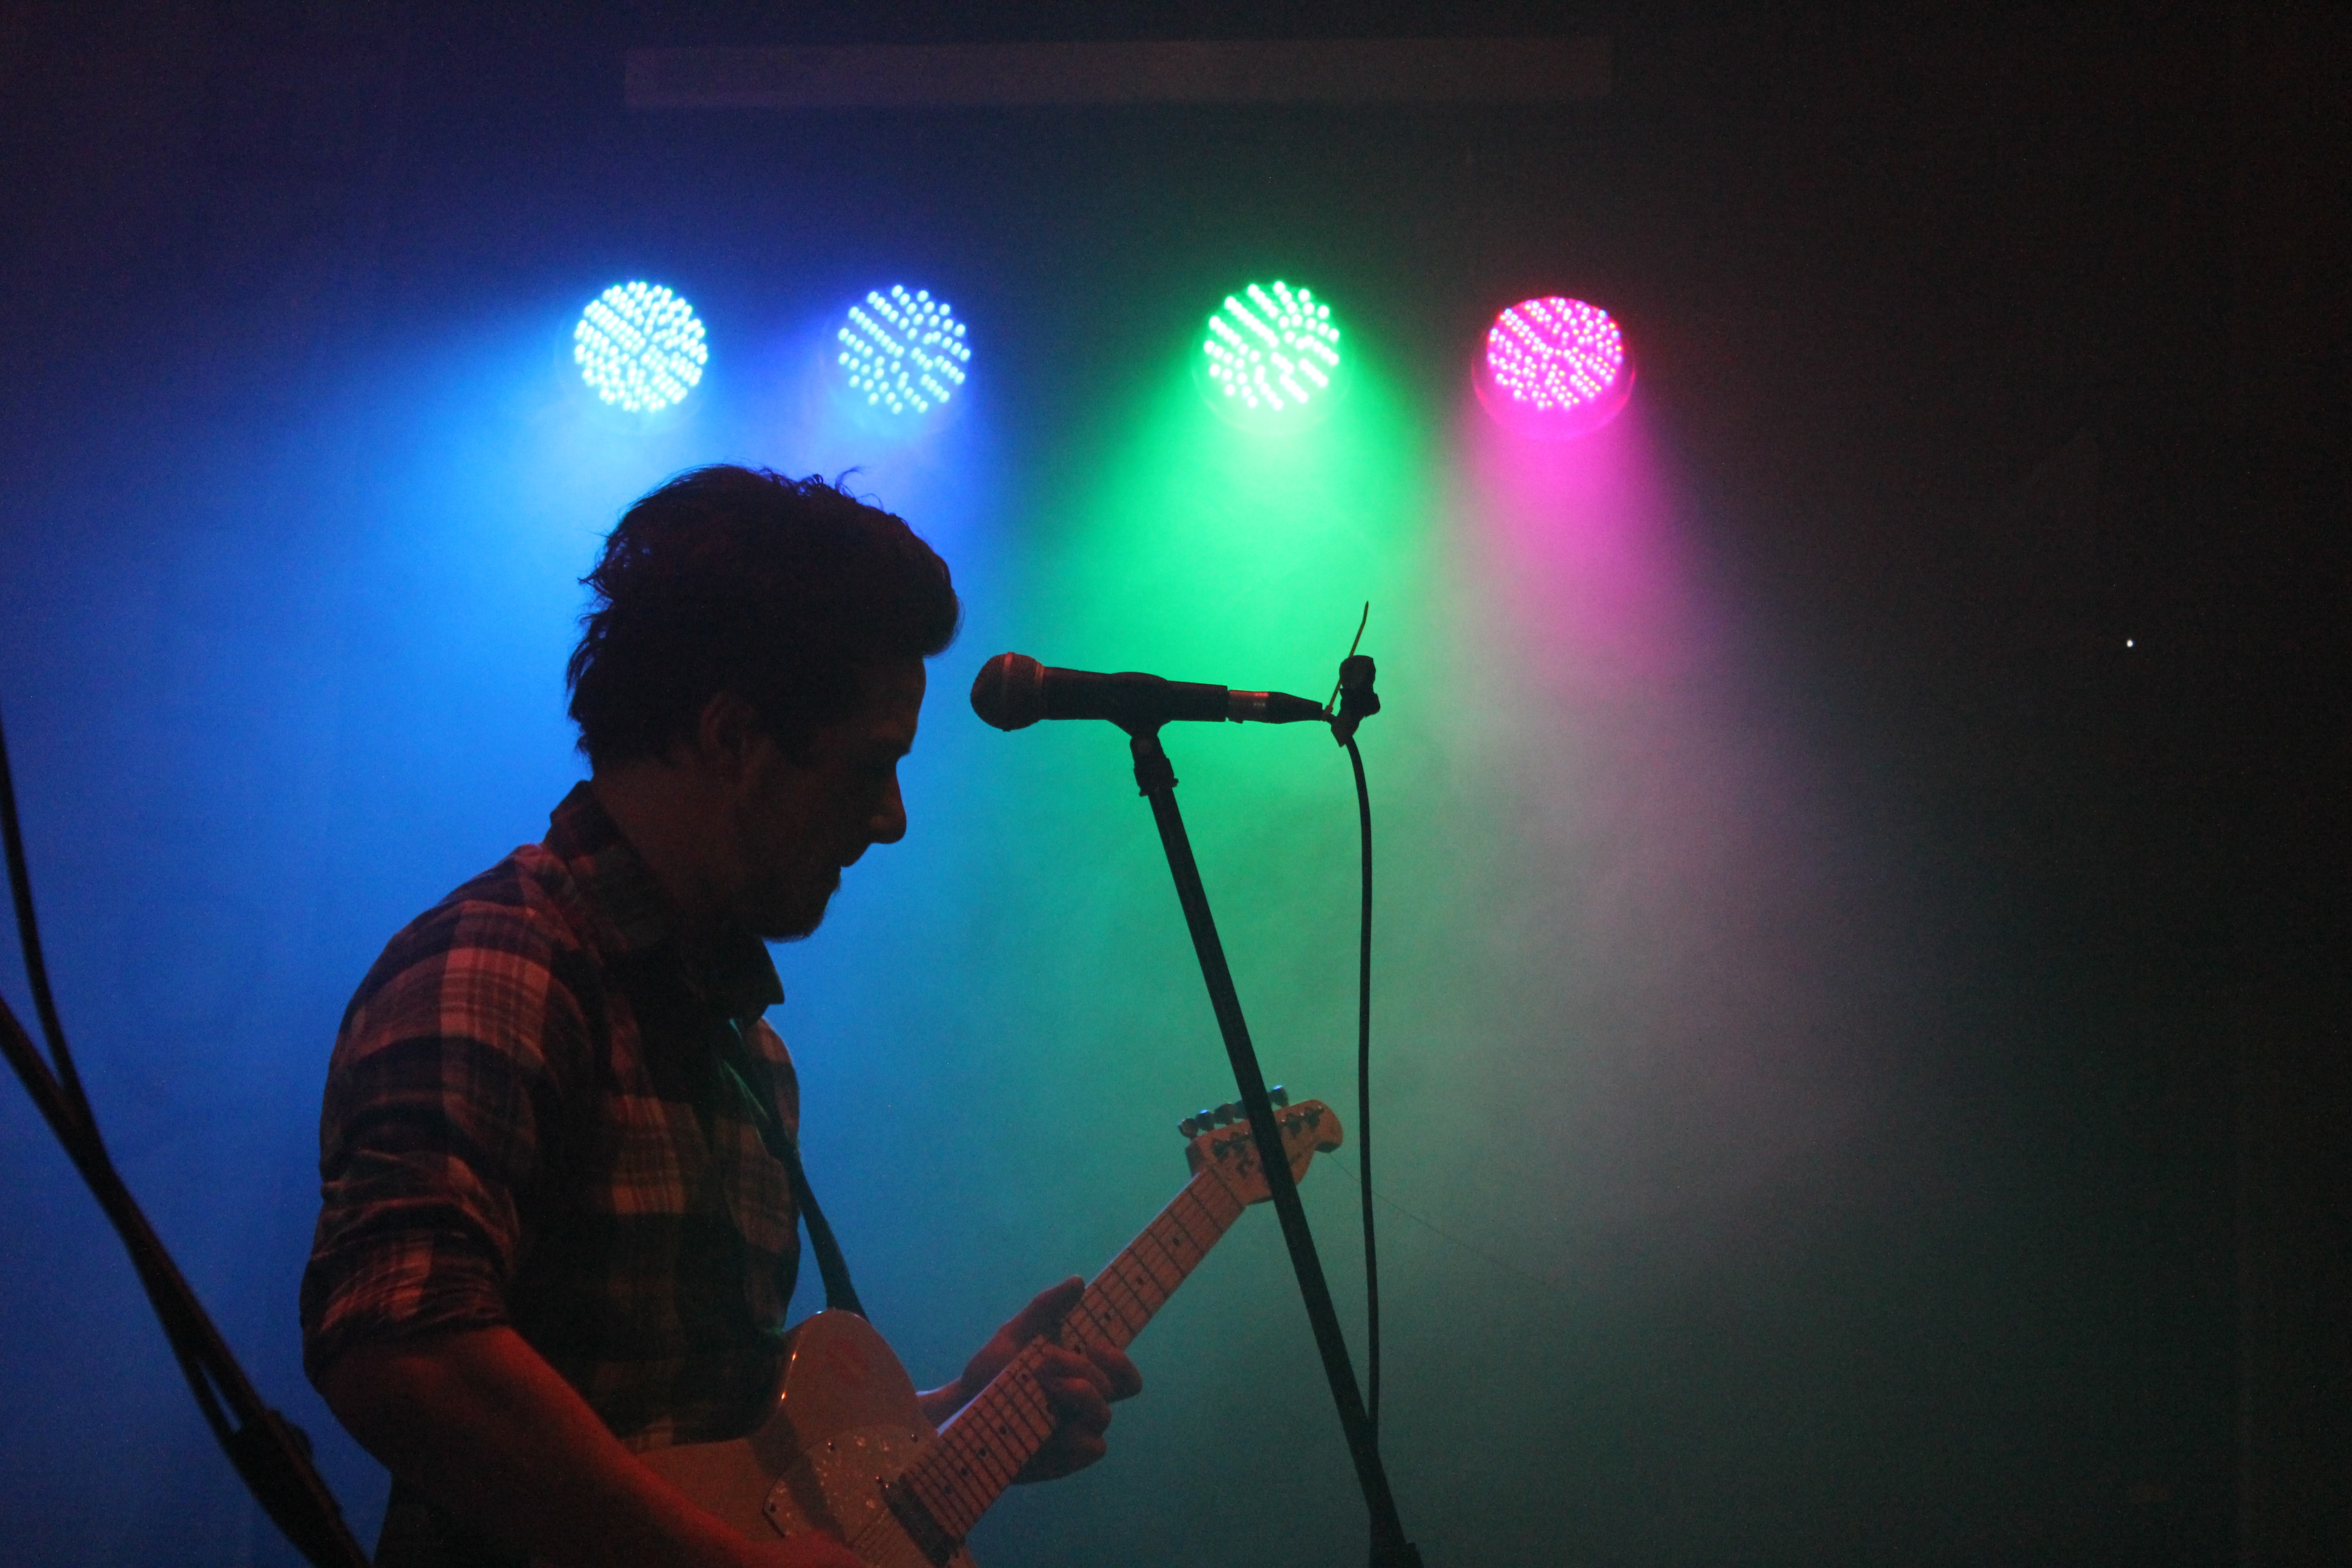 man playing guitar with stage lights